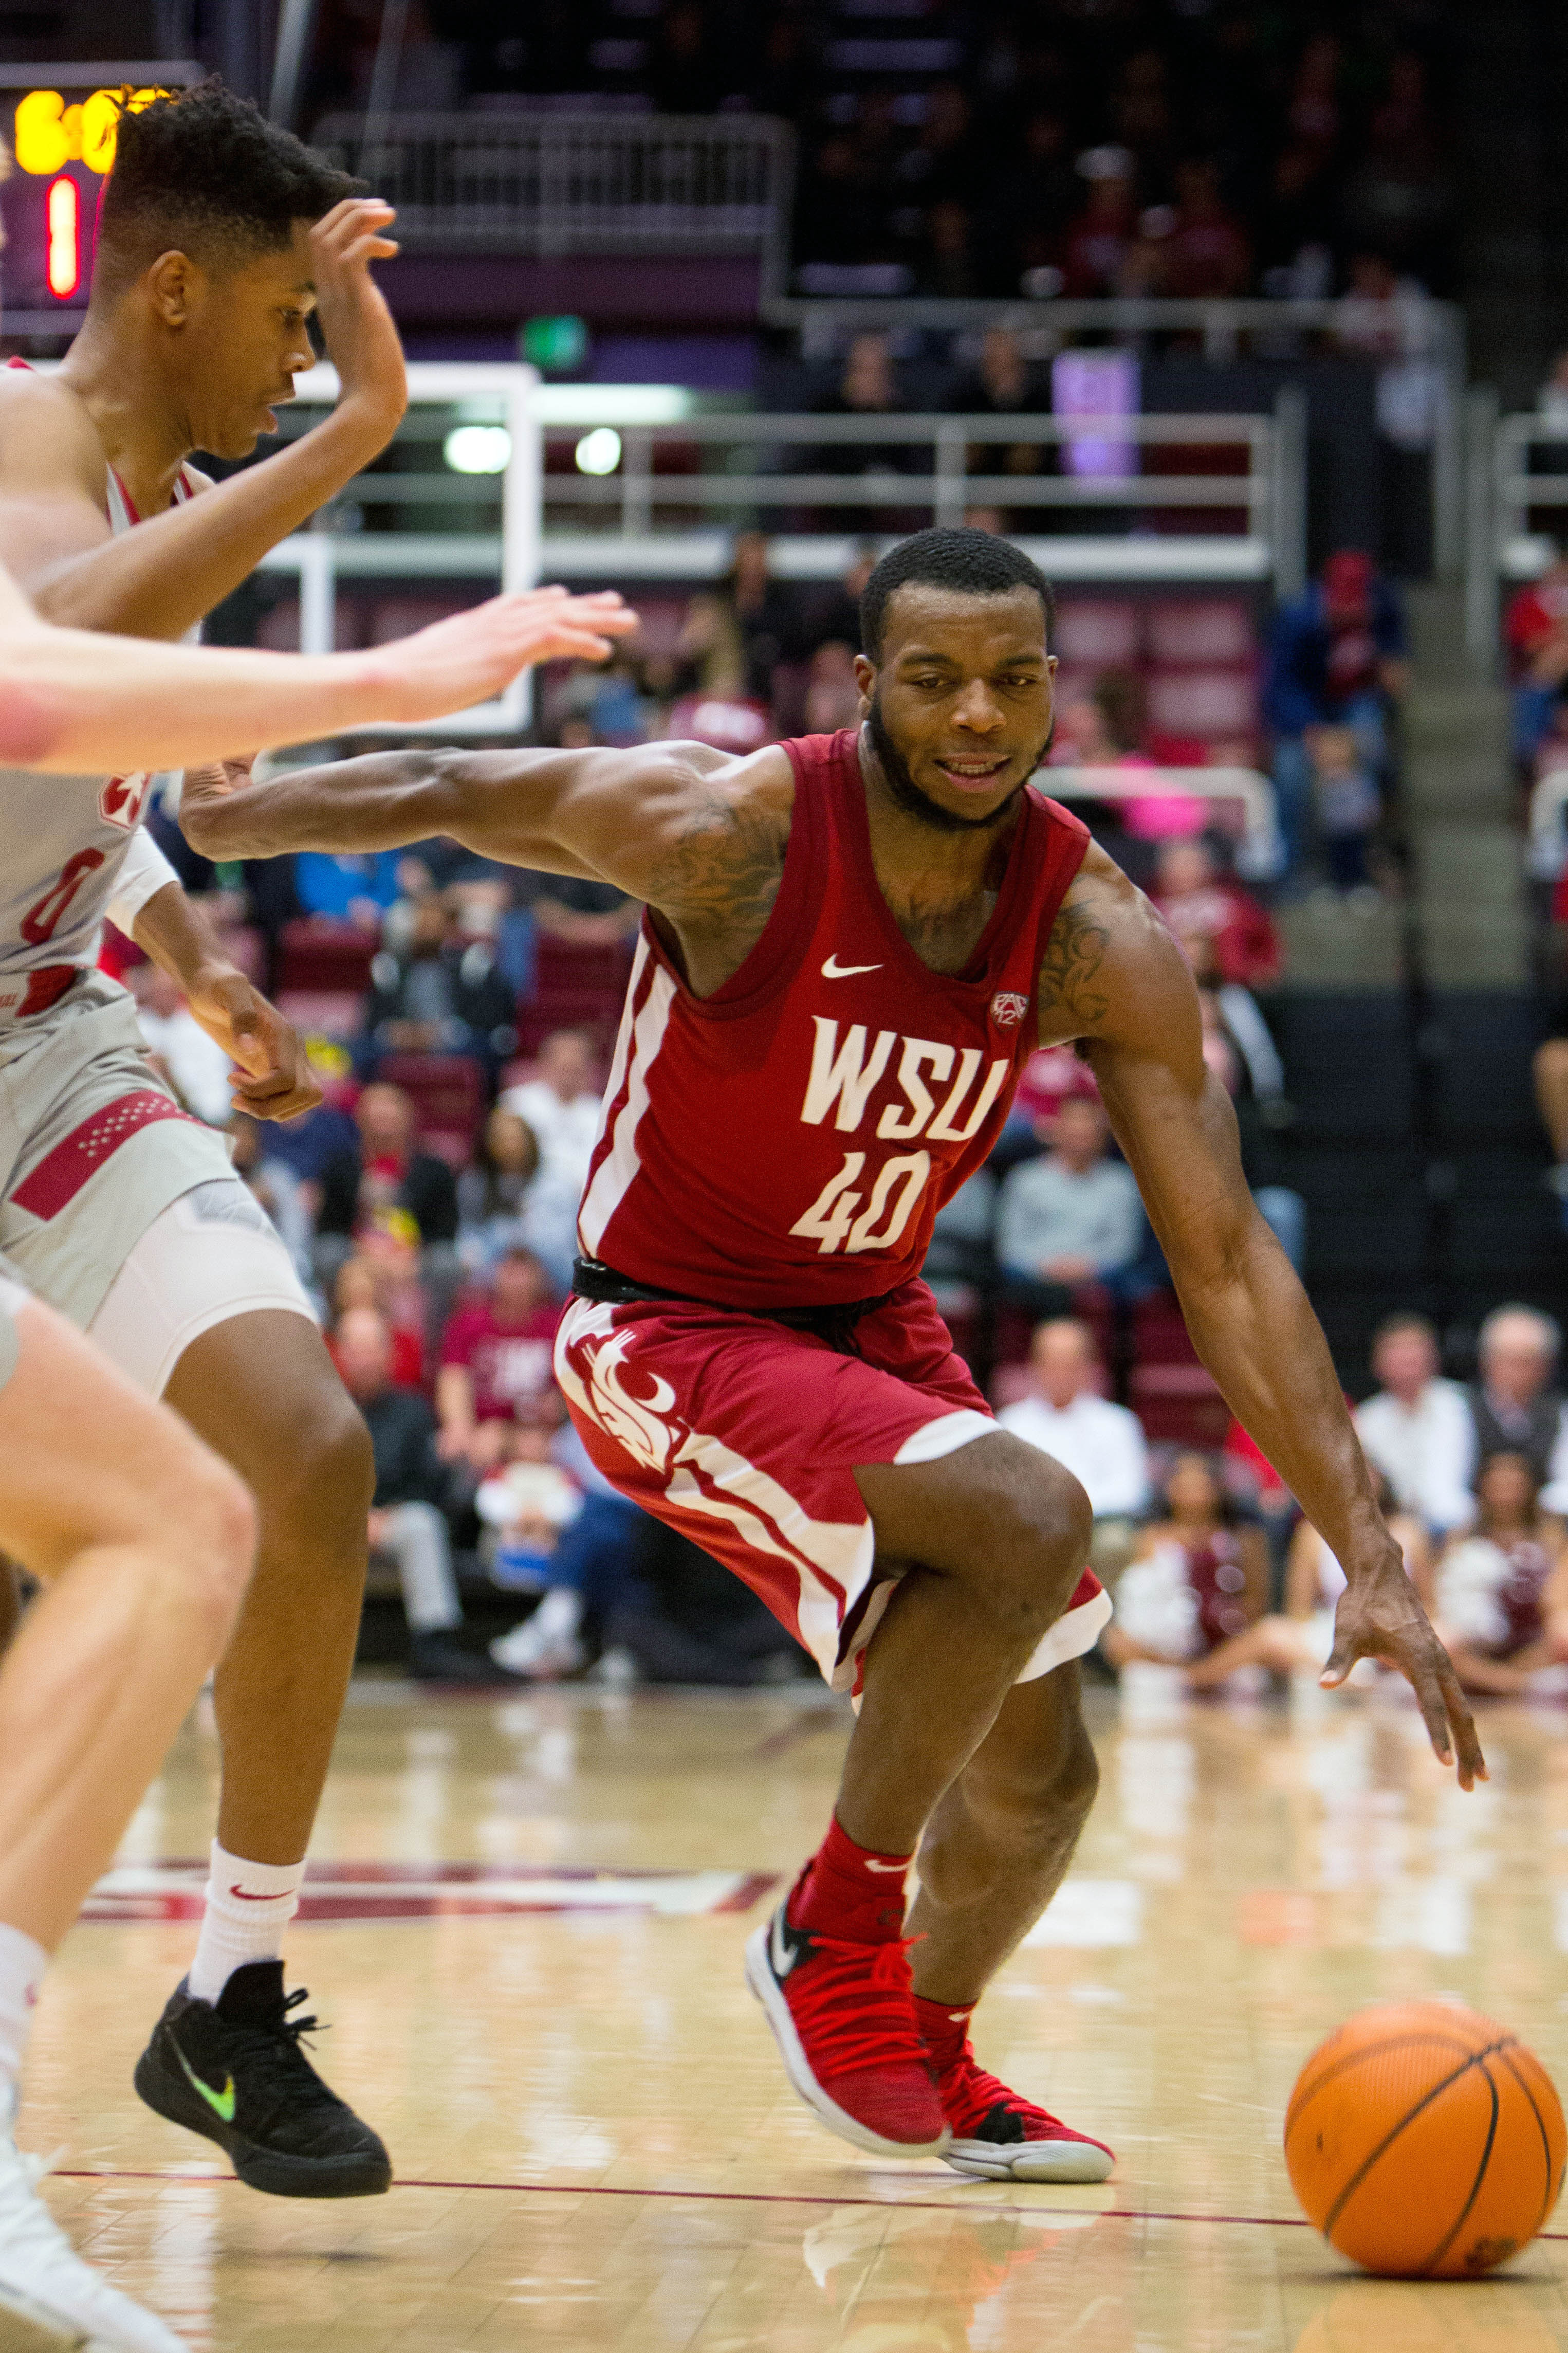 Another Transfer Kwinton Hinson Leaves